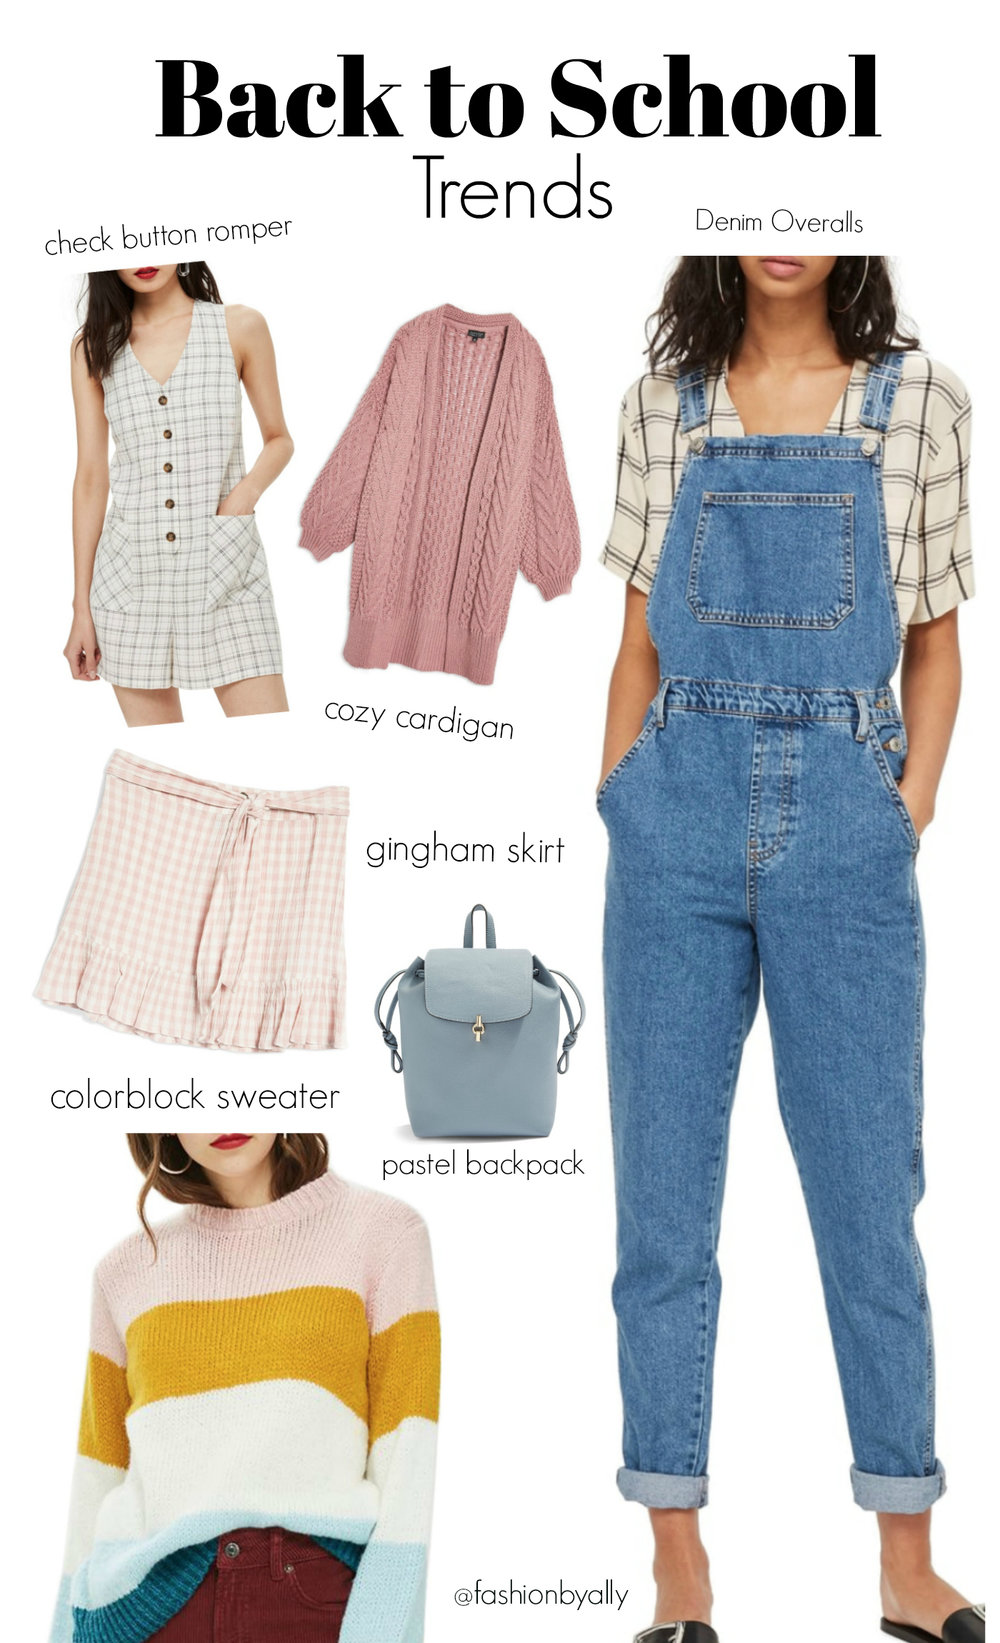 back-to-school-trends-ally.jpg